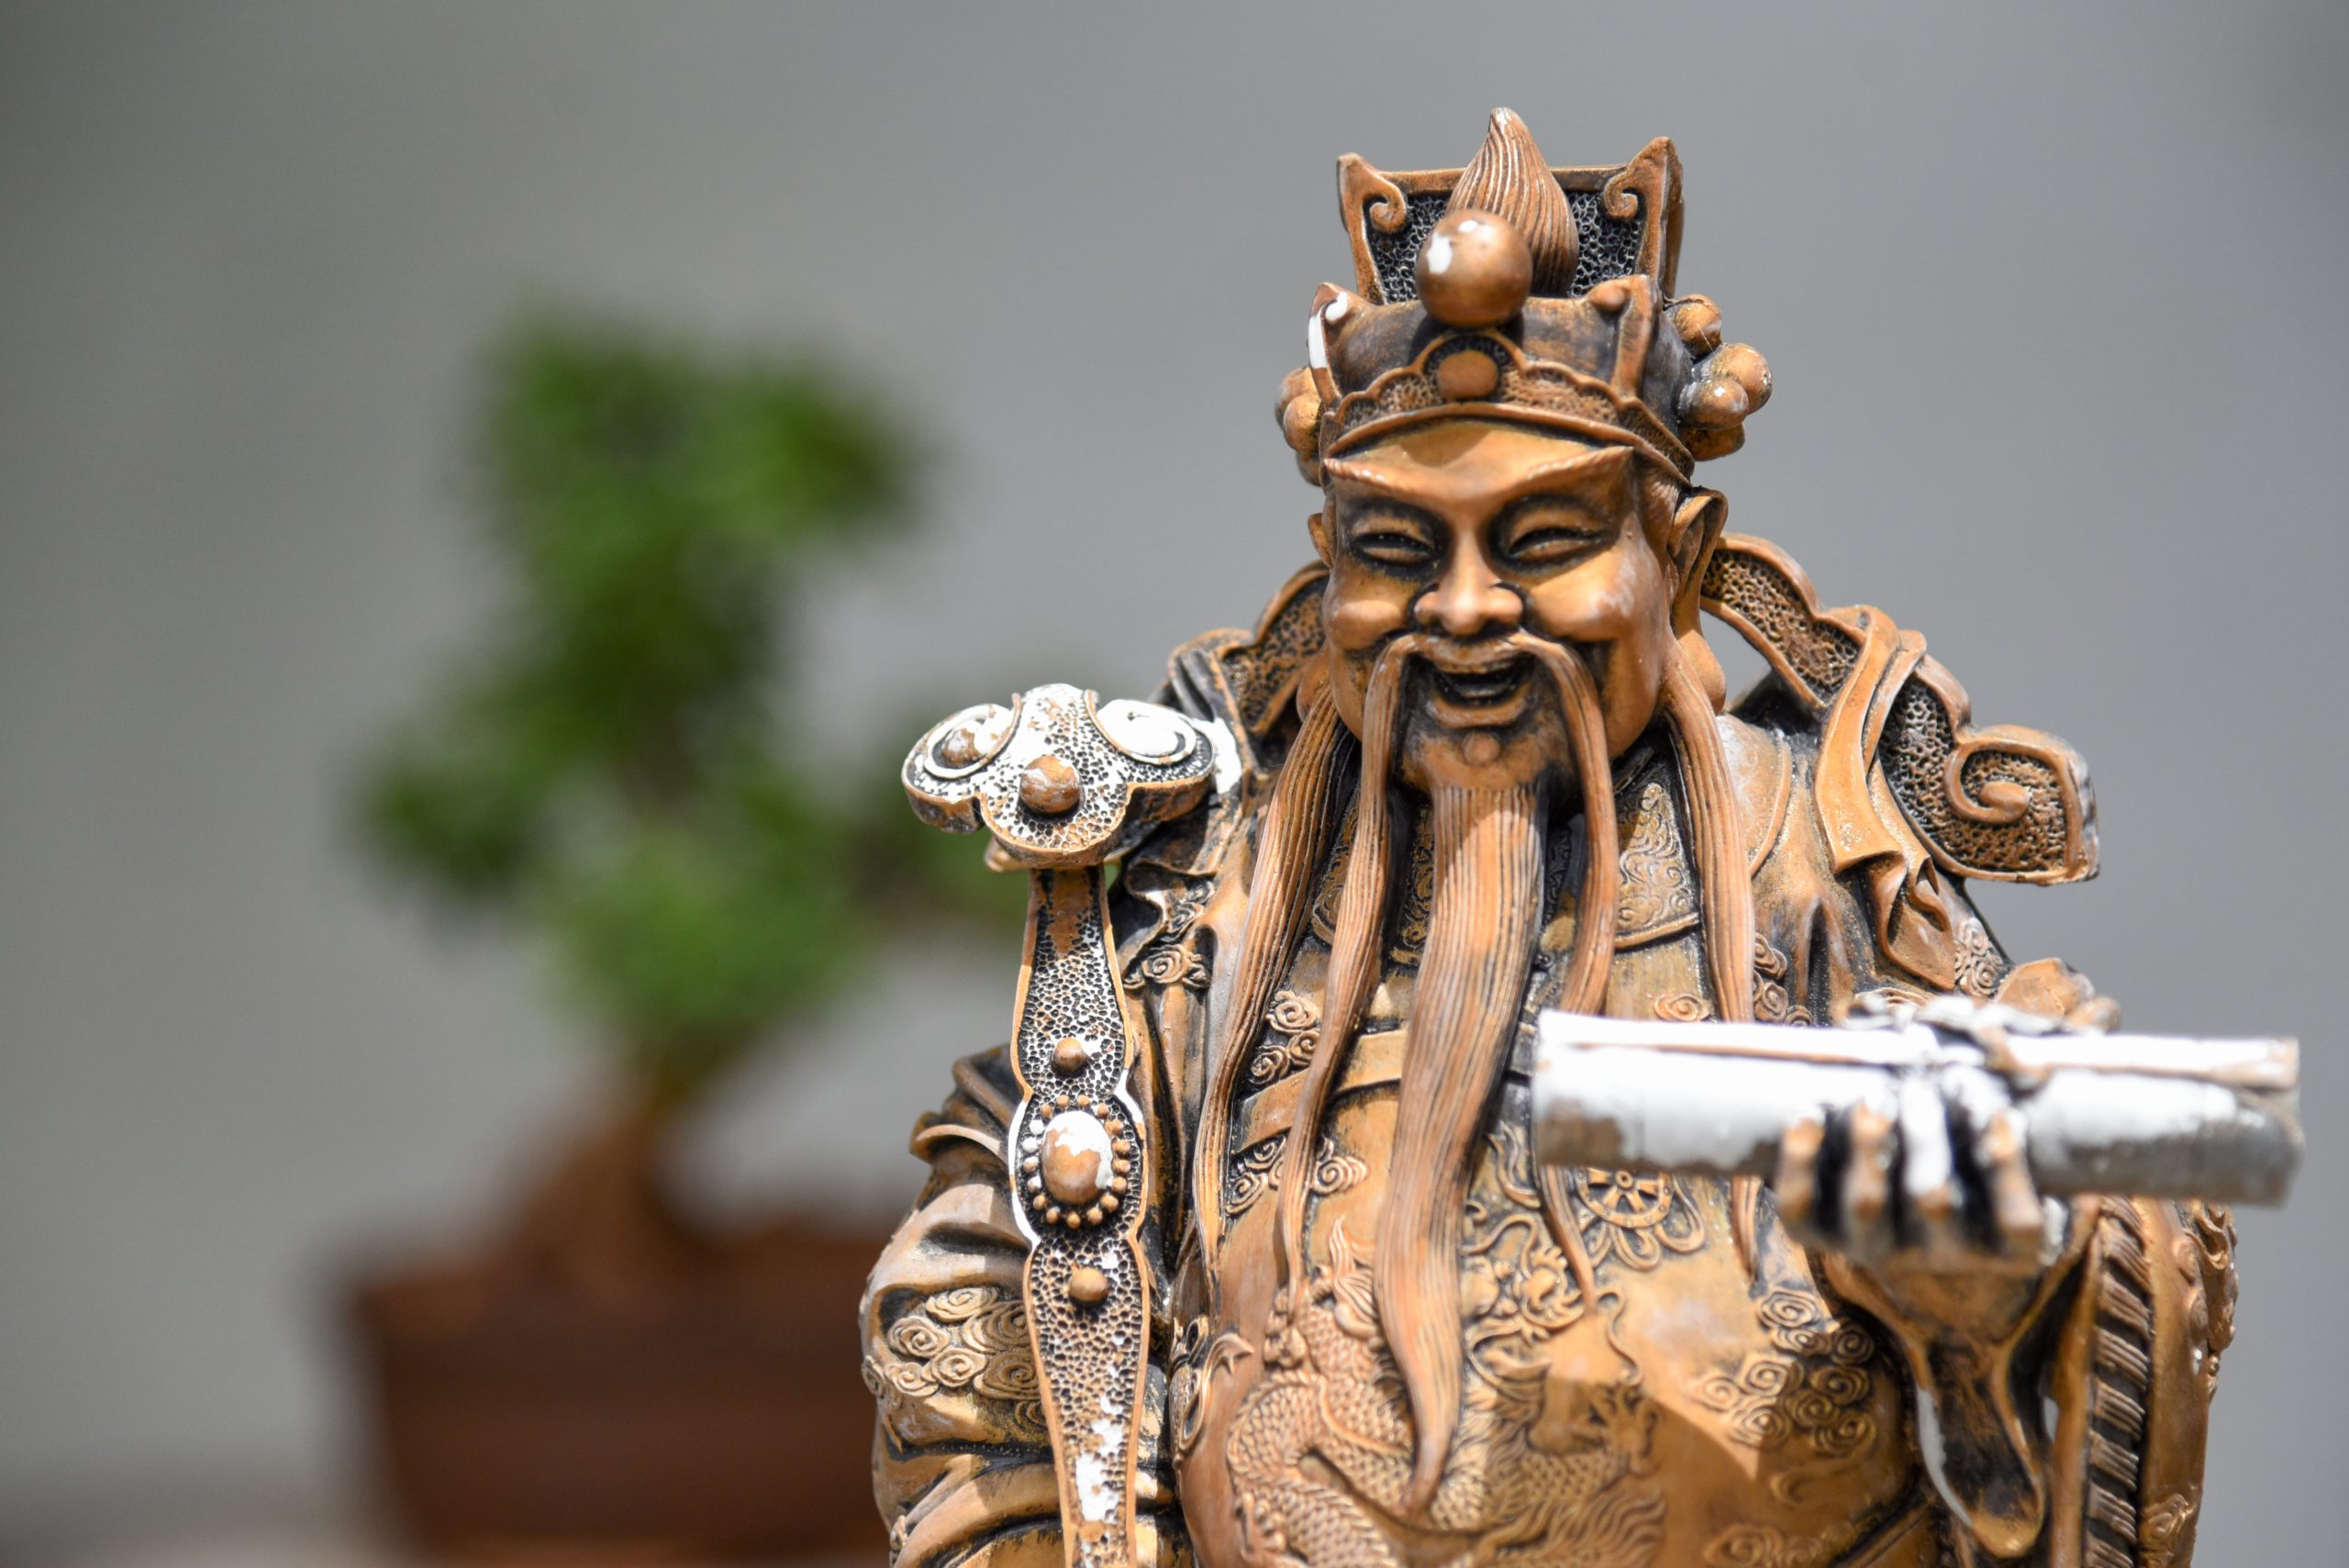 An old Chinese man statue